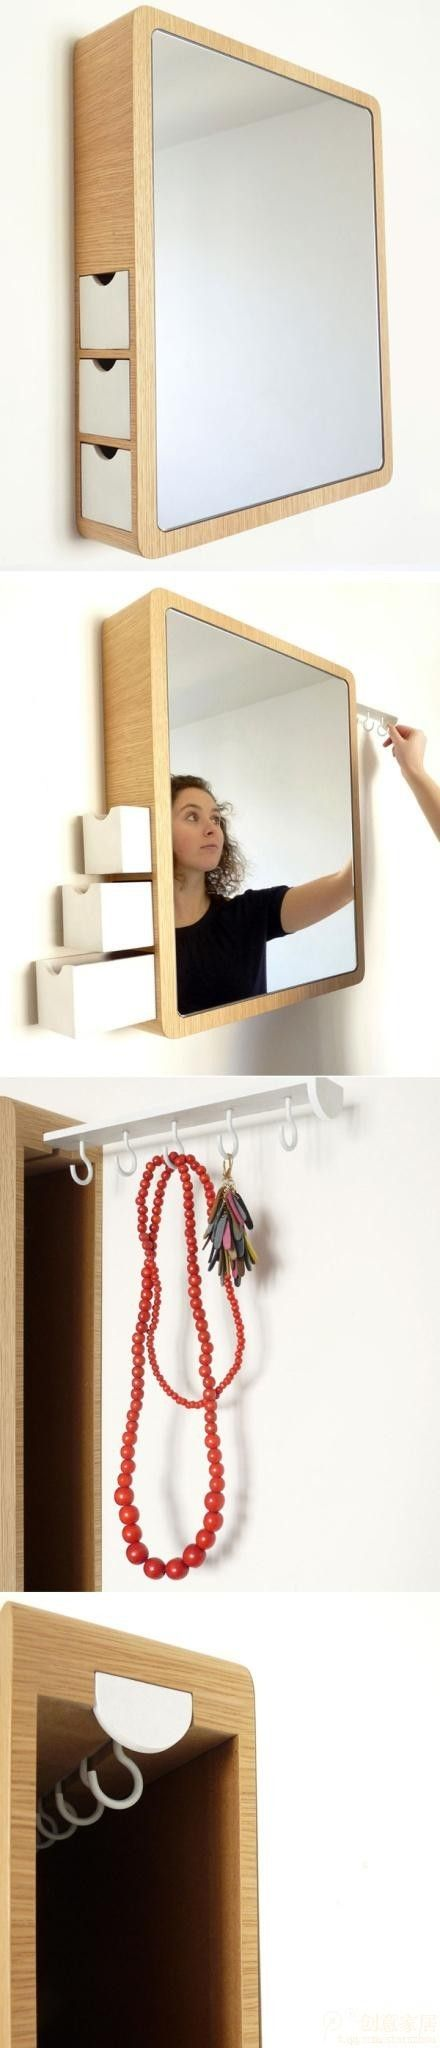 Design by Les M studio, this elegant makeup mirror comes with hidden